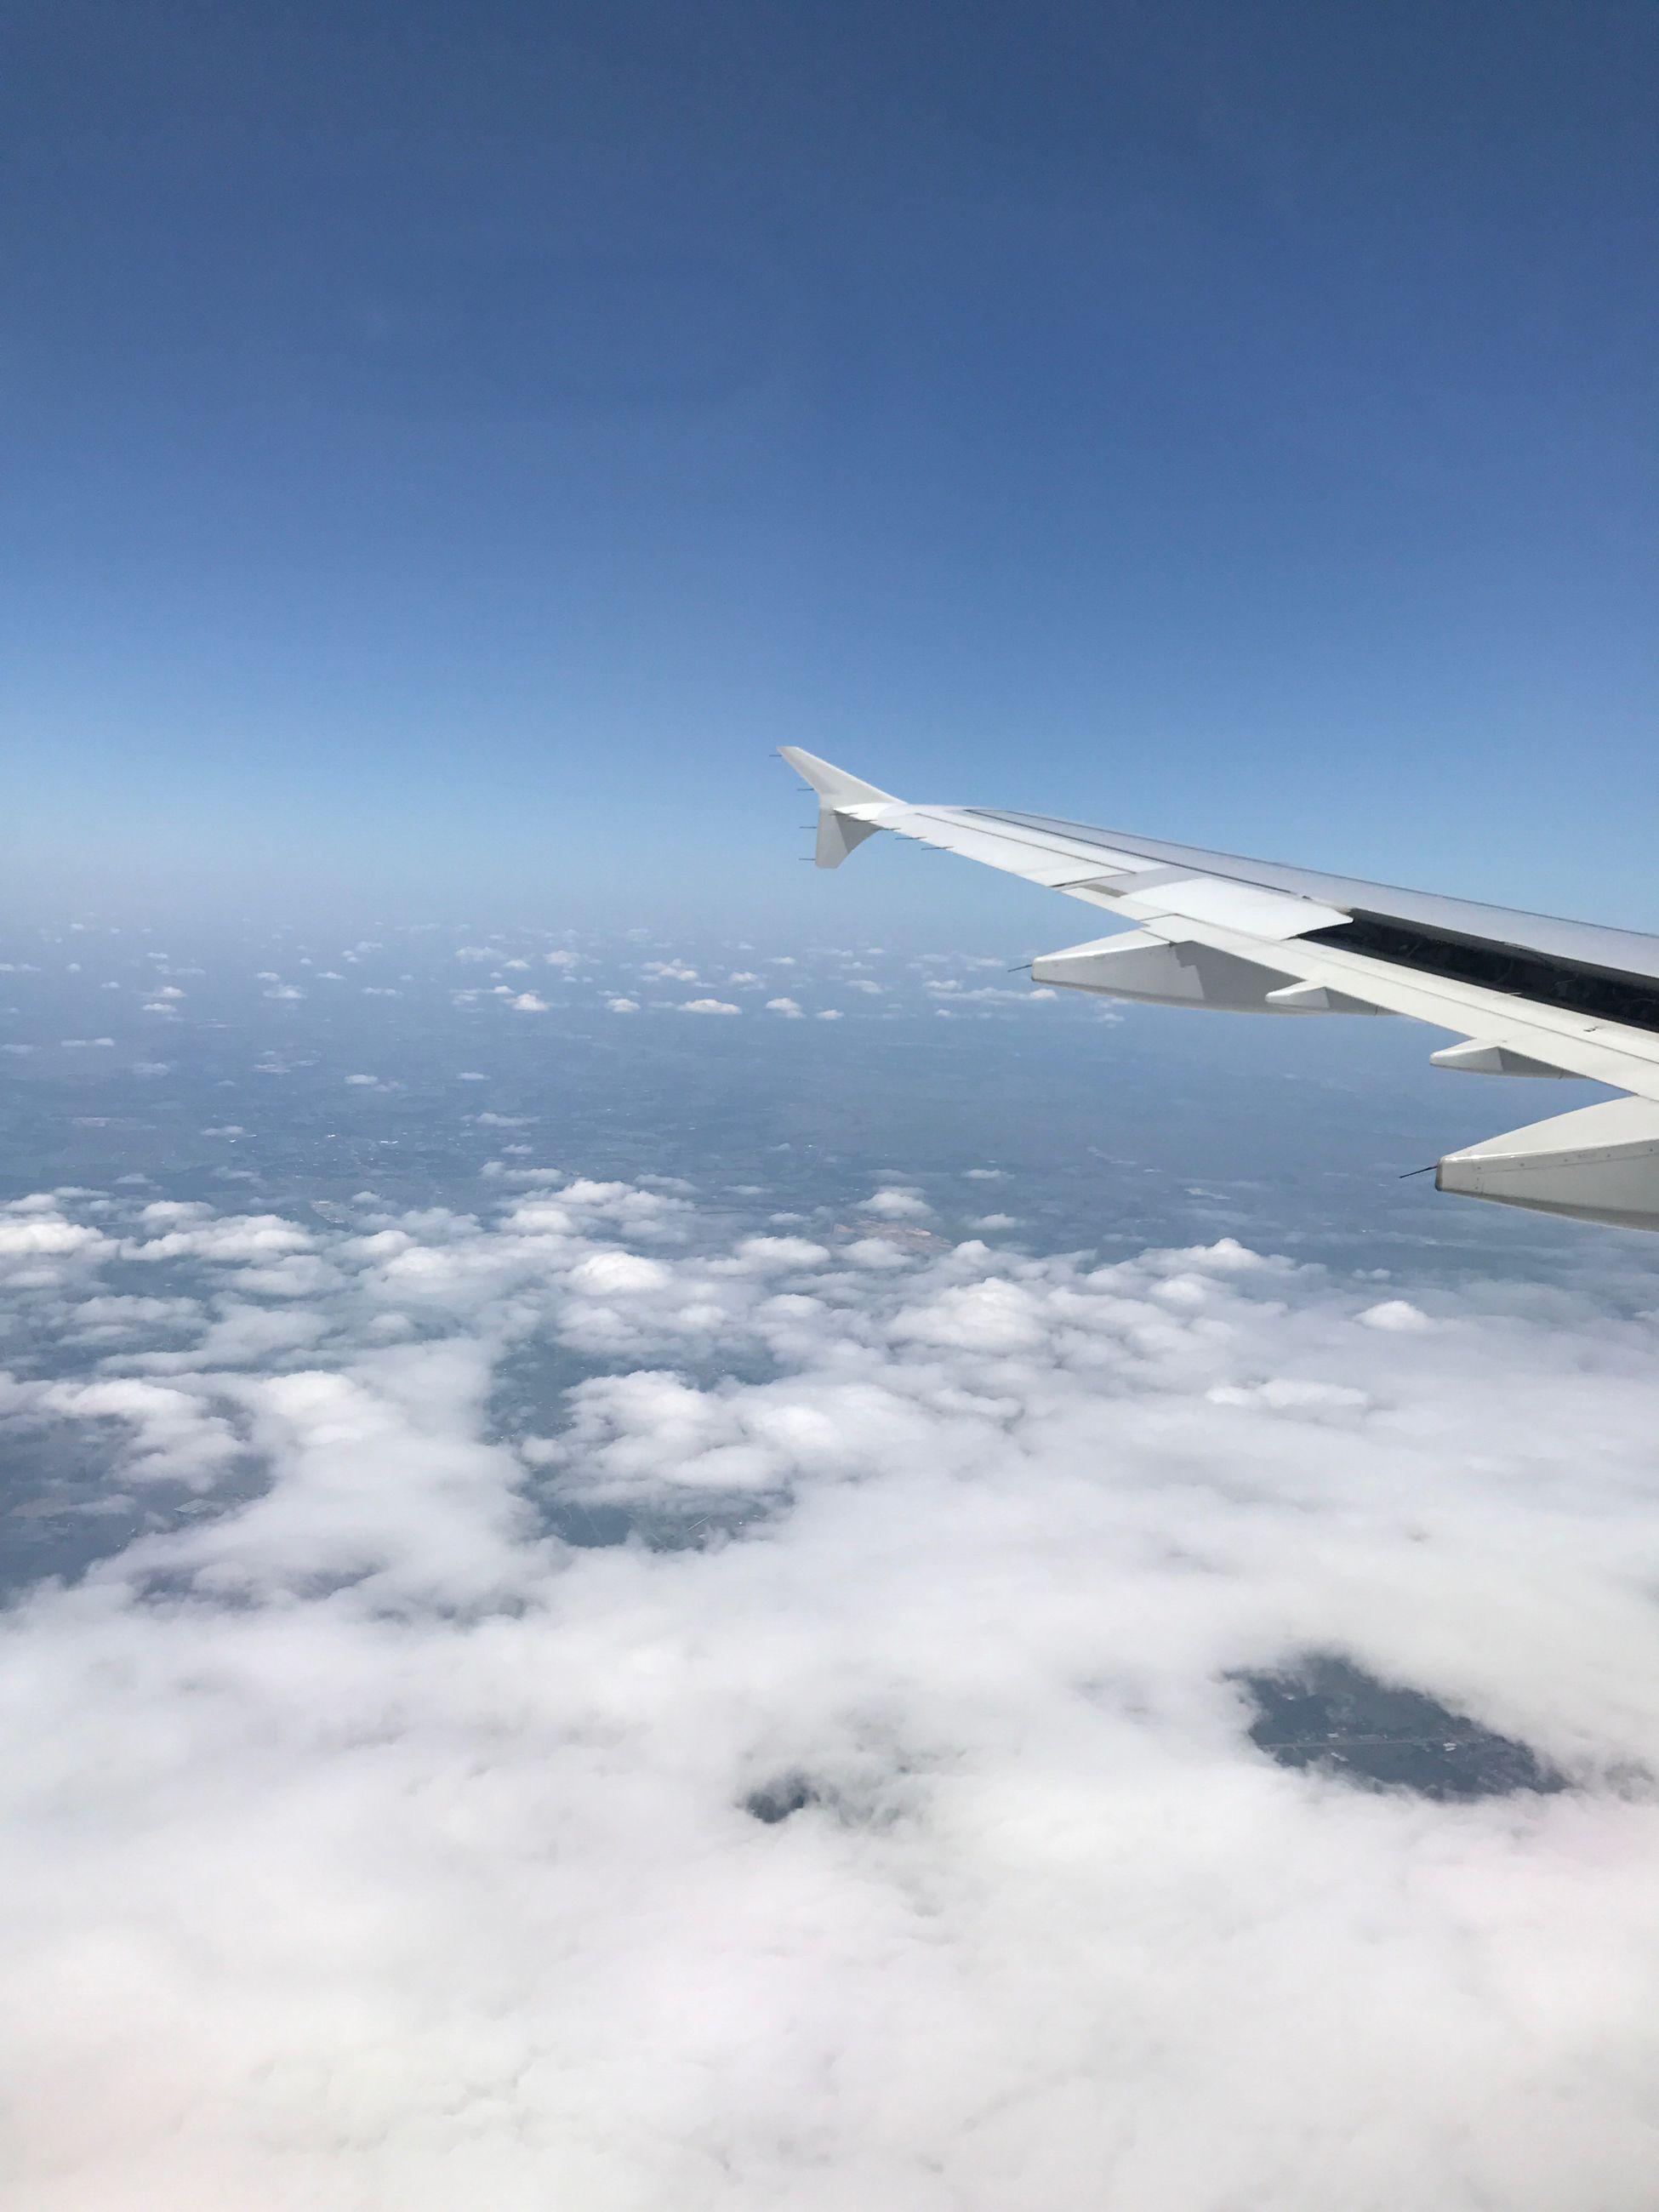 airplane, transportation, sky, journey, nature, aerial view, mode of transport, cloud - sky, flying, airplane wing, day, scenics, travel, air vehicle, outdoors, no people, blue, aircraft wing, beauty in nature